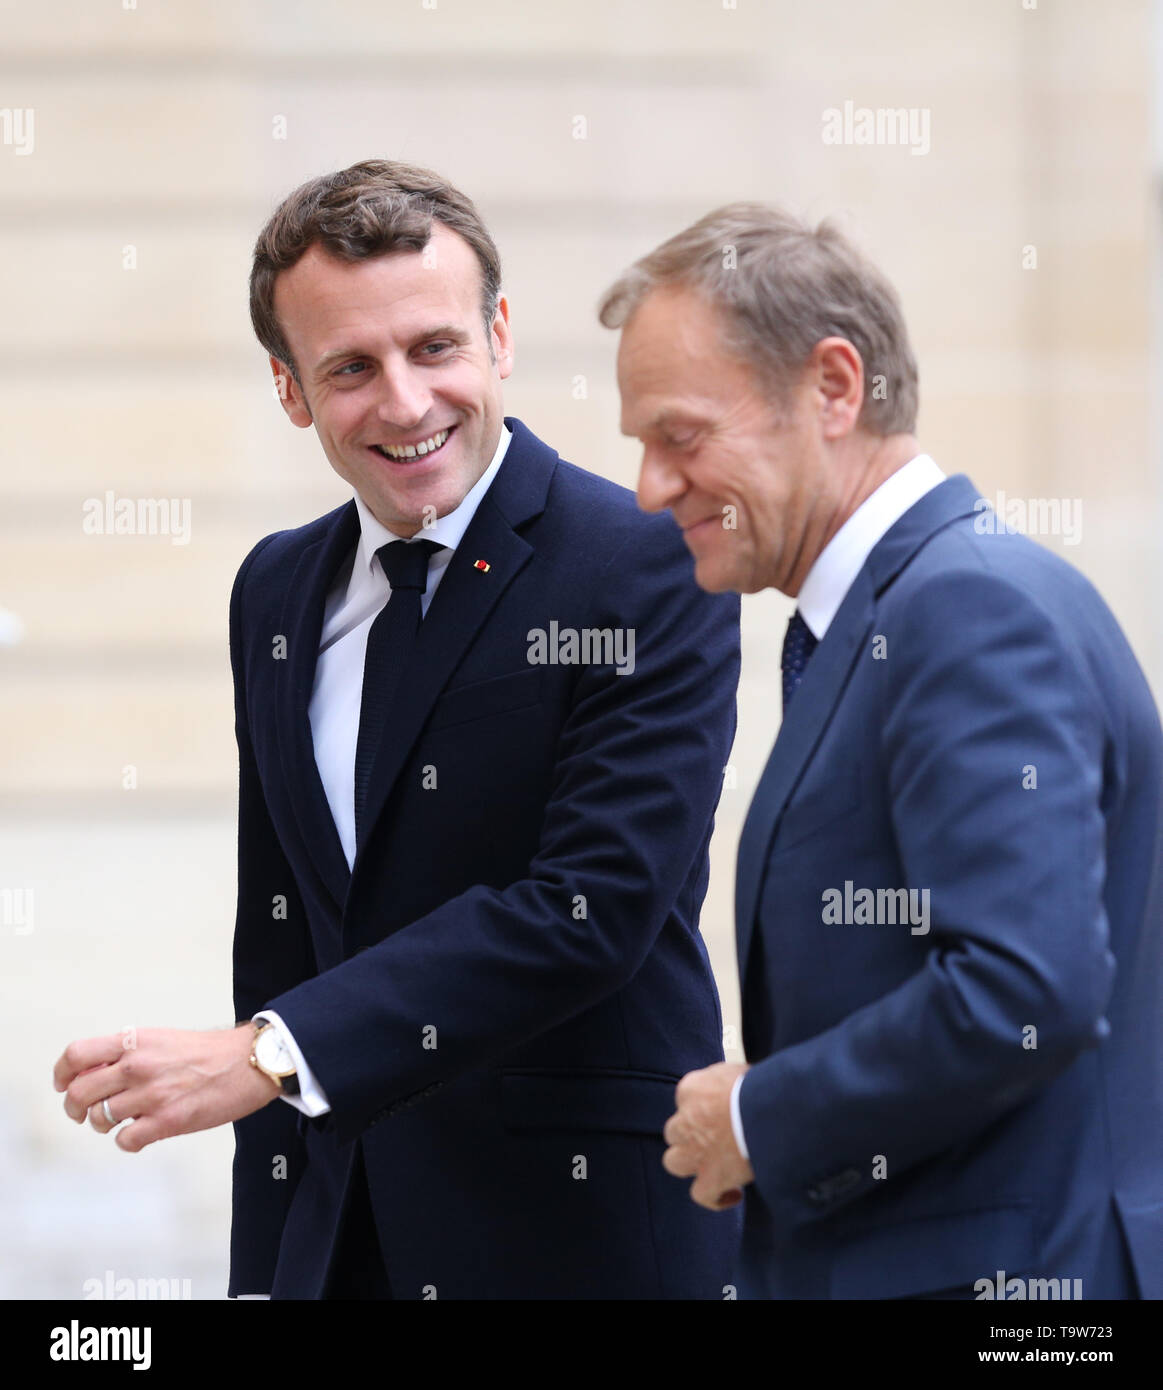 Paris, France. 20th May, 2019. French President Emmanuel Macron (L) meets with visiting European Council President Donald Tusk at the Elysee Palace in Paris, France, May 20, 2019. Credit: Gao Jing/Xinhua/Alamy Live News - Stock Image